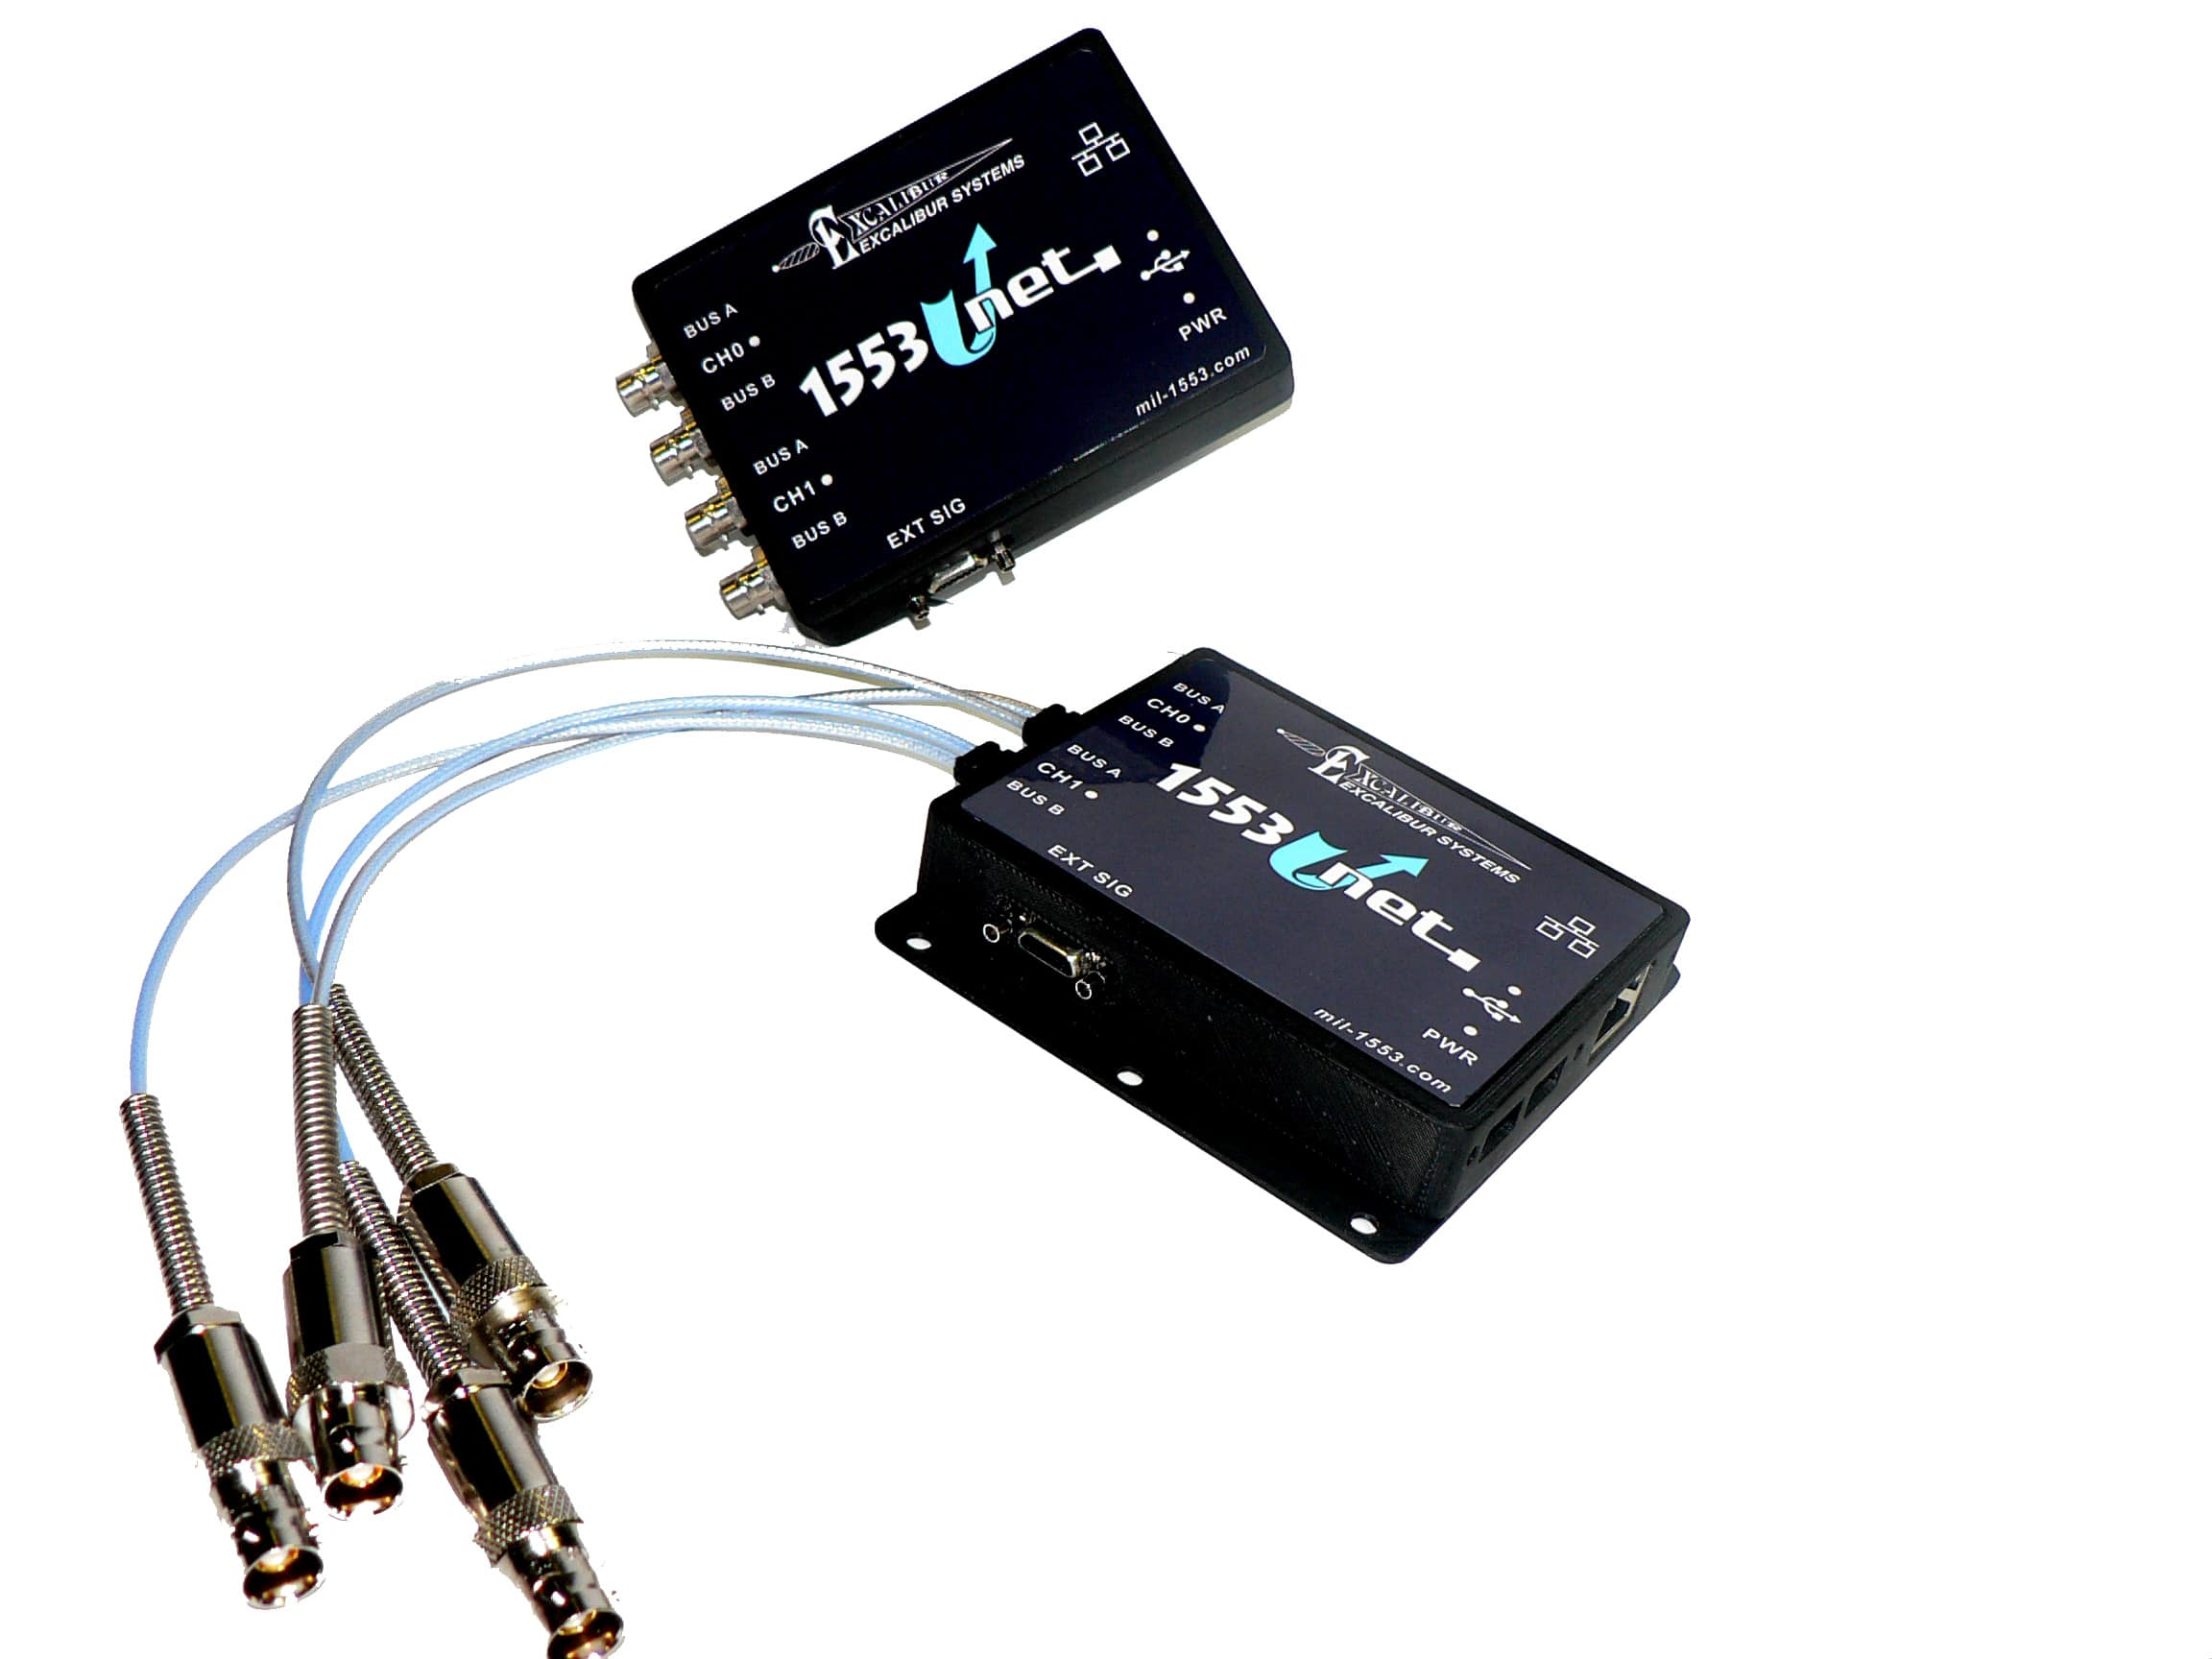 mil-std-1553 usb/ethernet